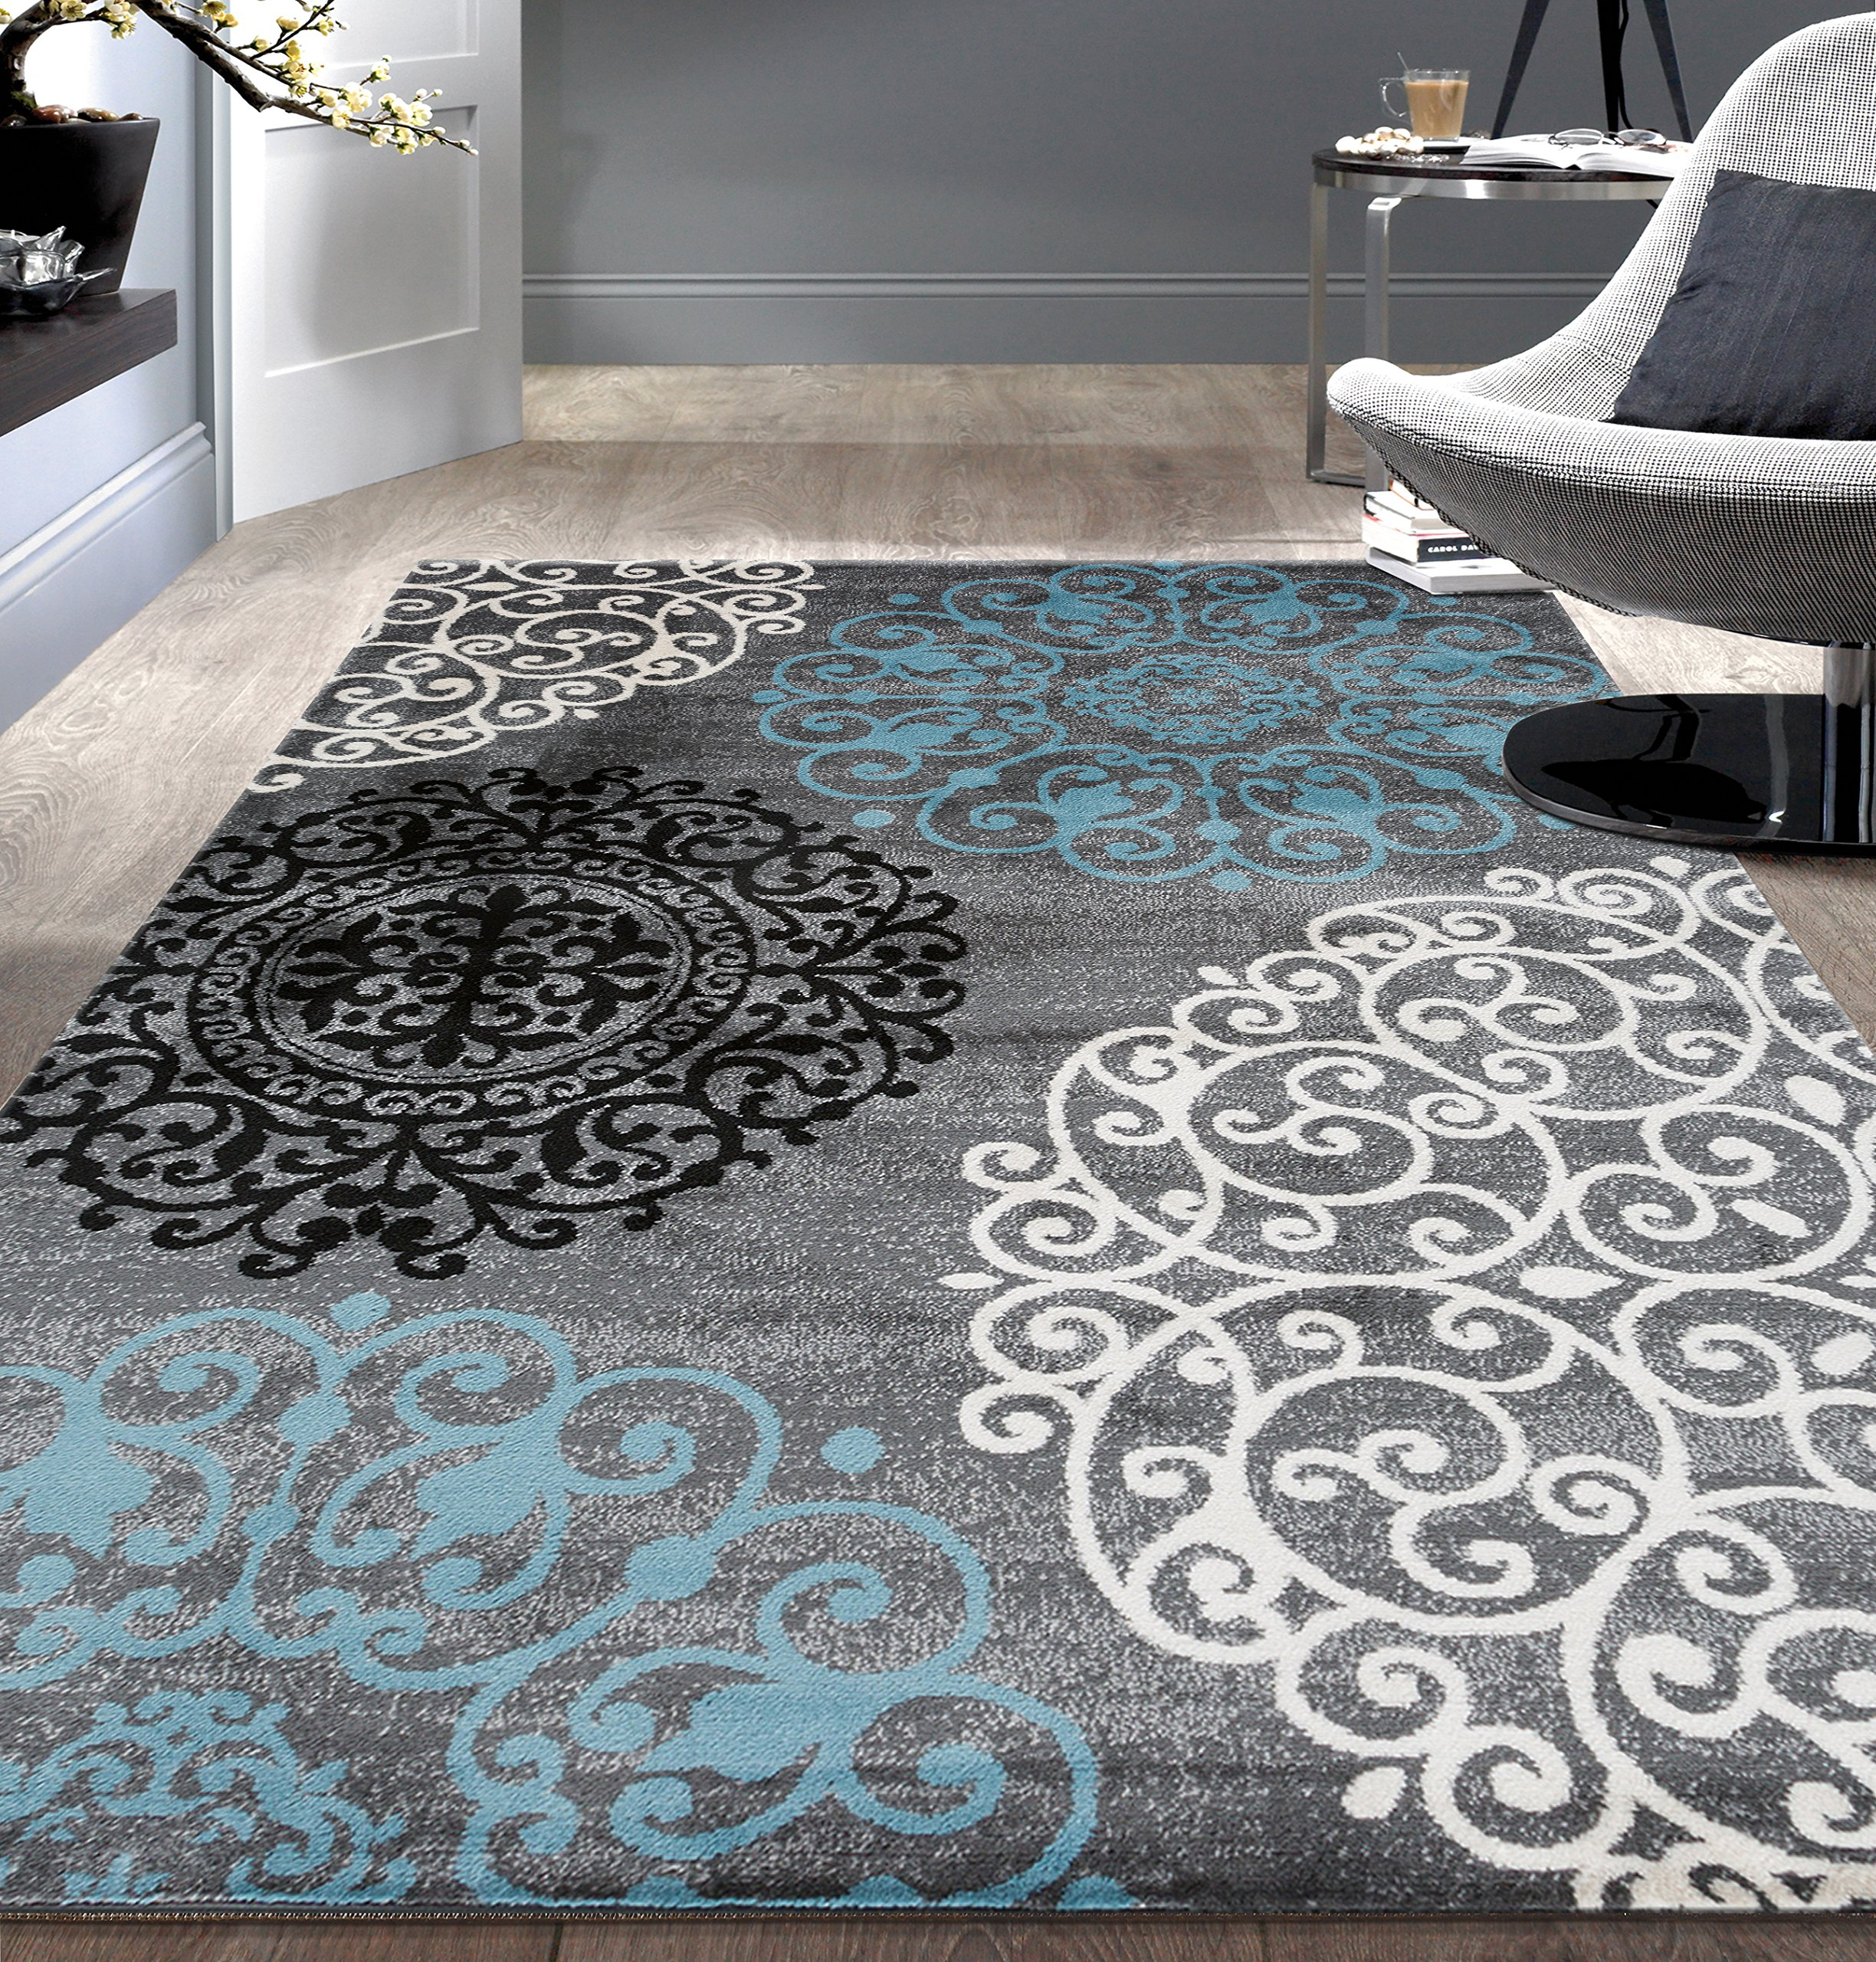 Contemporary Modern Floral Indoor Soft Area Rug 7'10'' x 10'2'' Gray by Rugshop